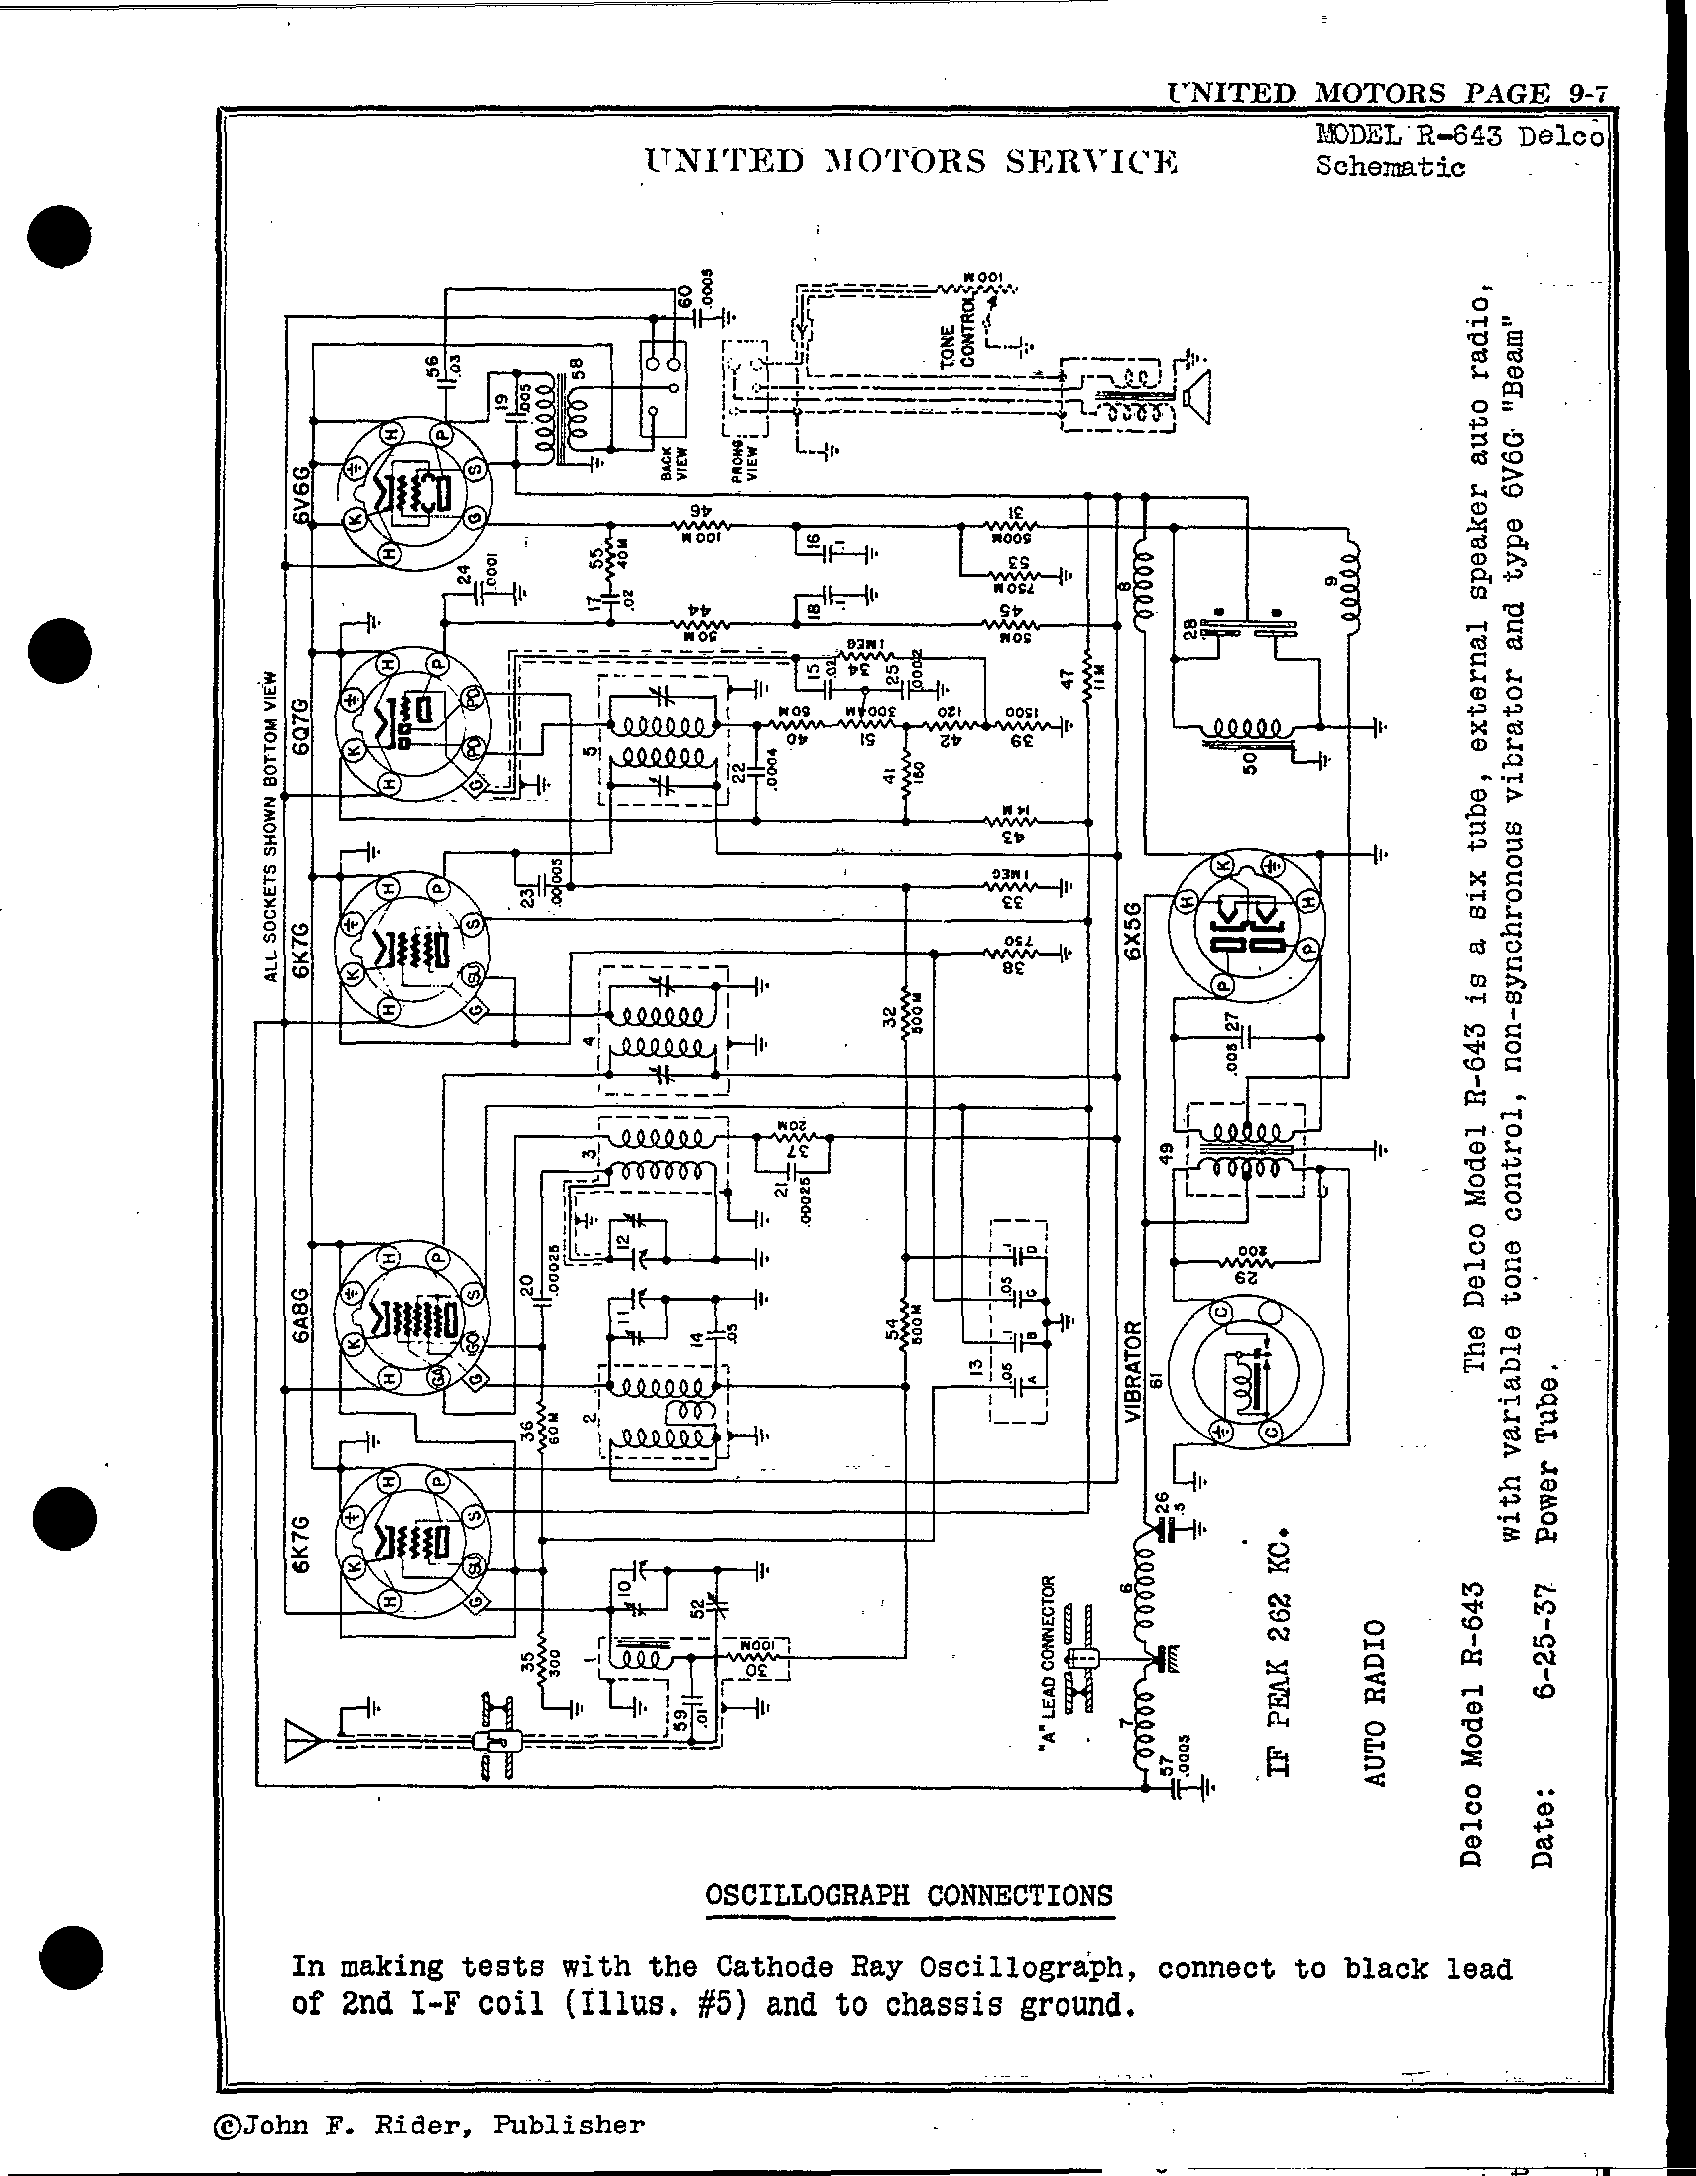 delco radio wiring diagram model 16213825